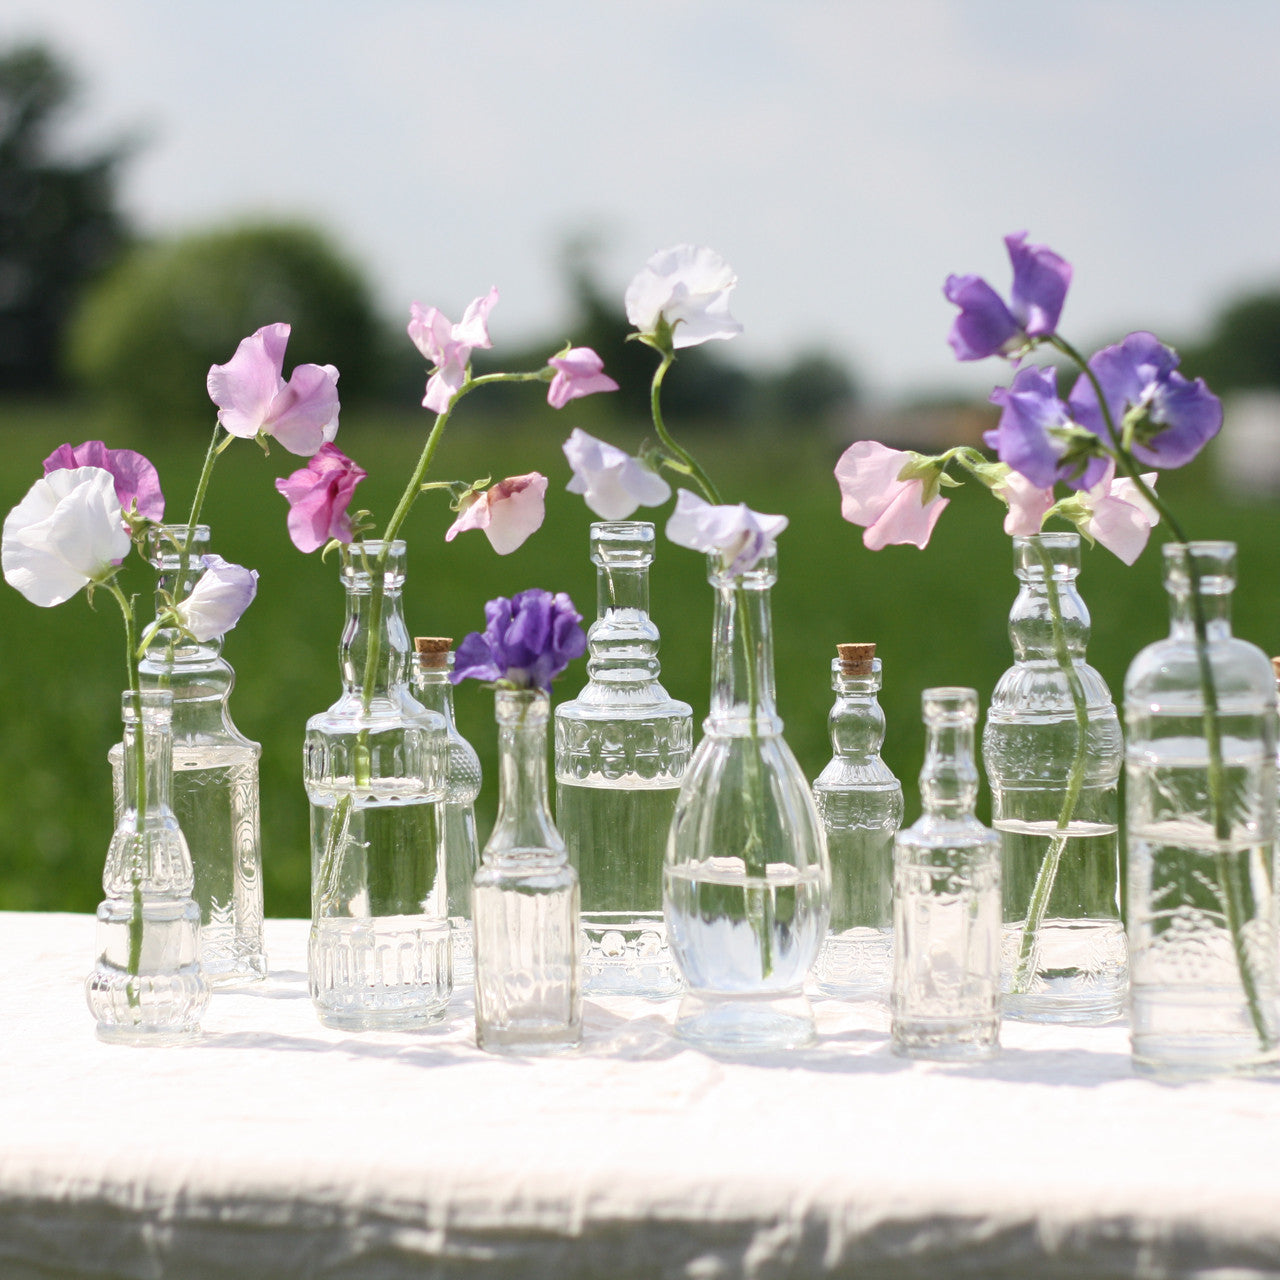 Real Weddings Cork: Set Of 6 Glass Bottle Vases (with Cork Stoppers)